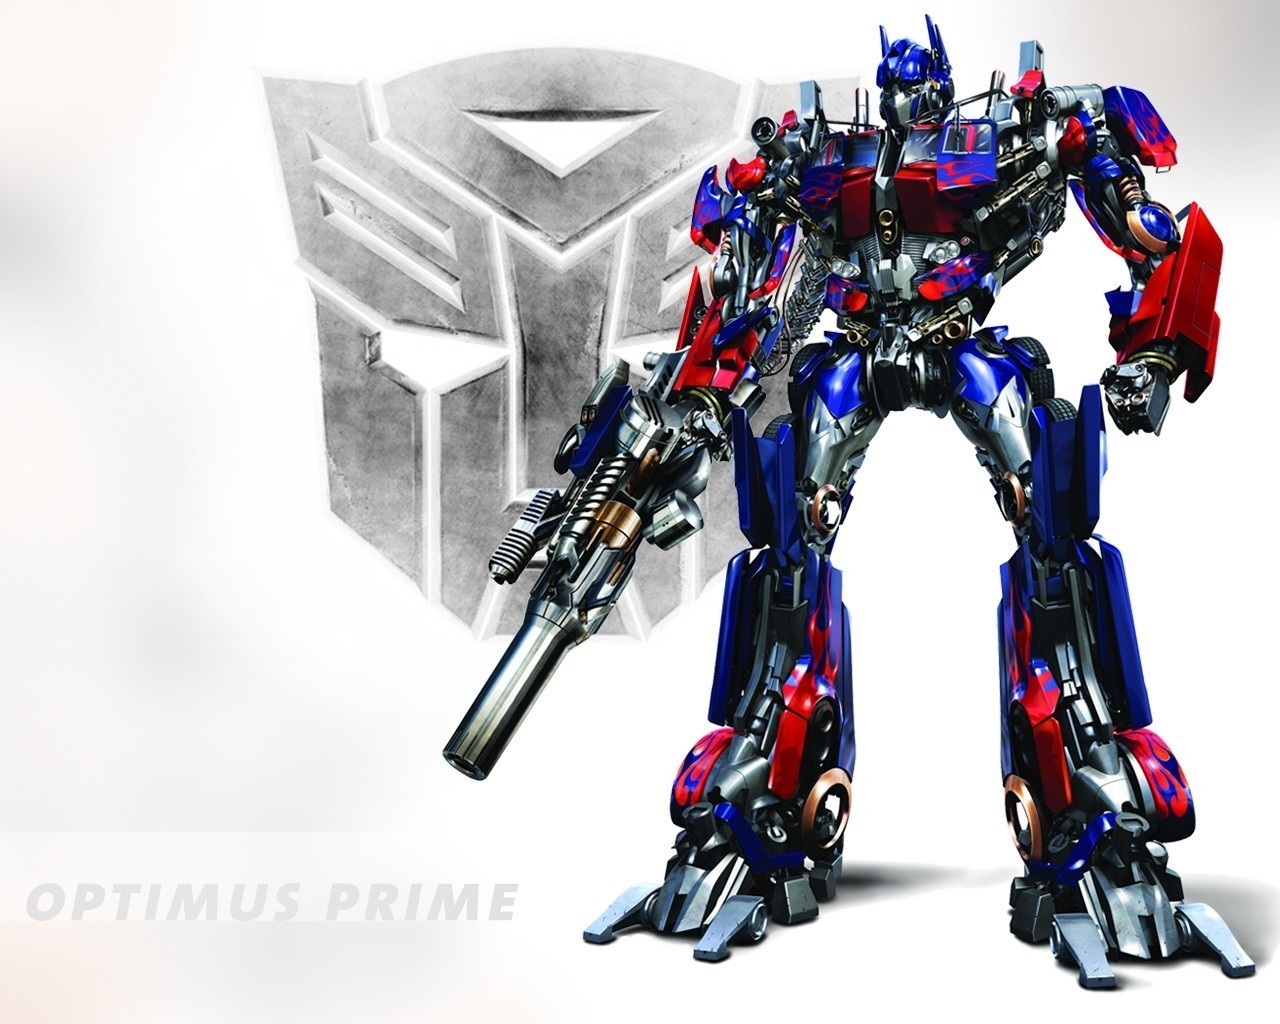 optimus prime wallpaper | 1280x1024 | #1026